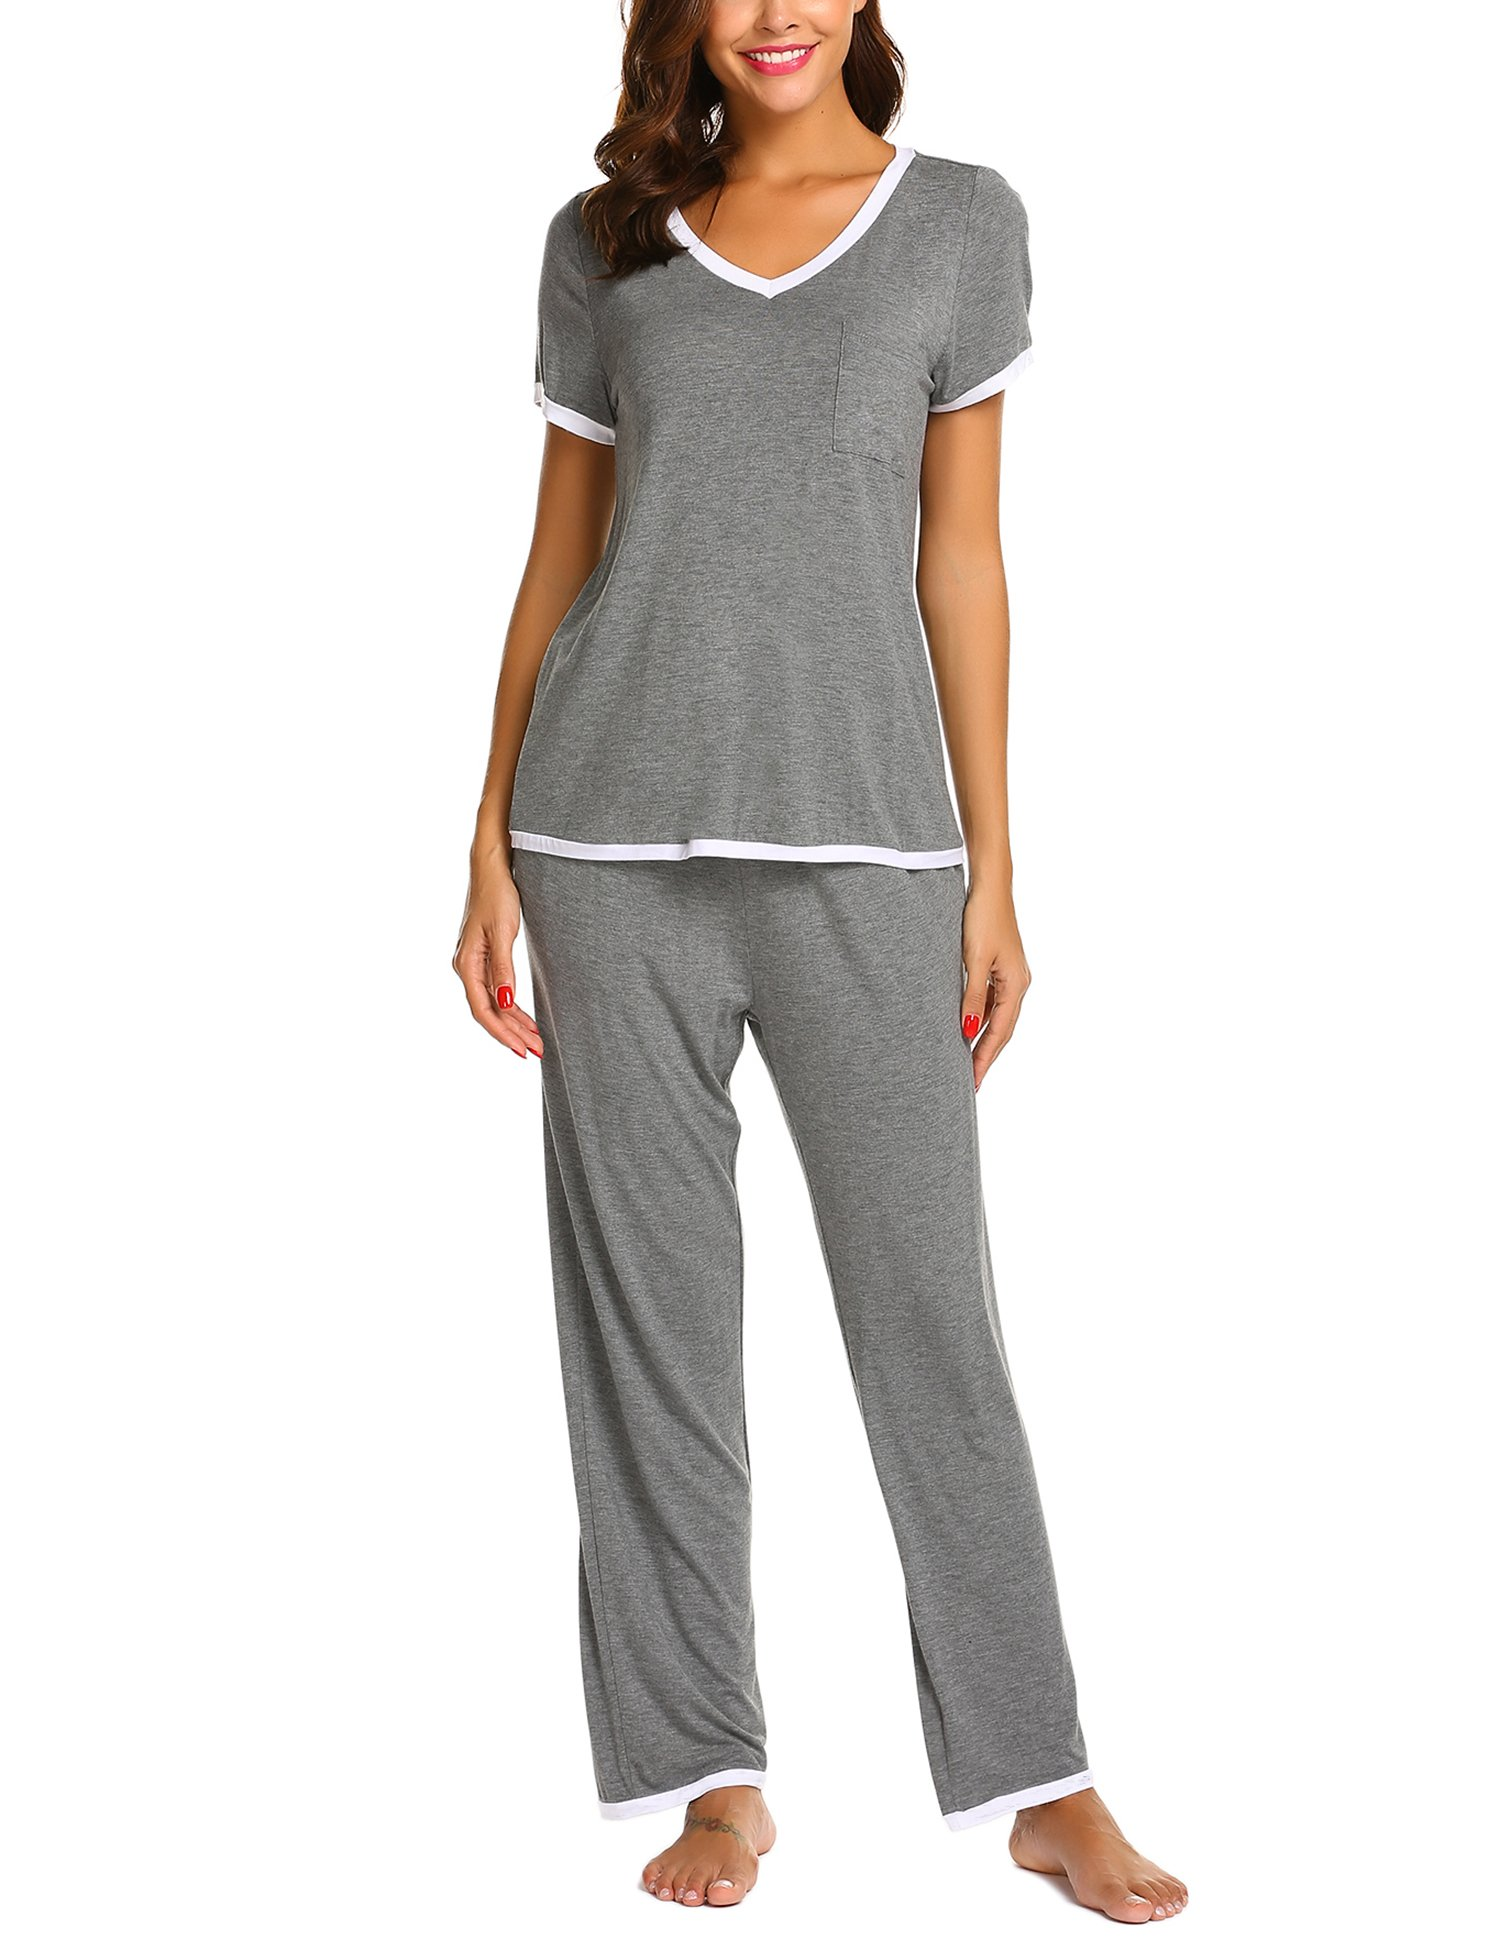 Ekouaer Women Pajamas Set V-Neck Short Sleeve Top and Elastic Waist Long Pants Lounge Sleepwear (Gray XL) by Ekouaer (Image #1)